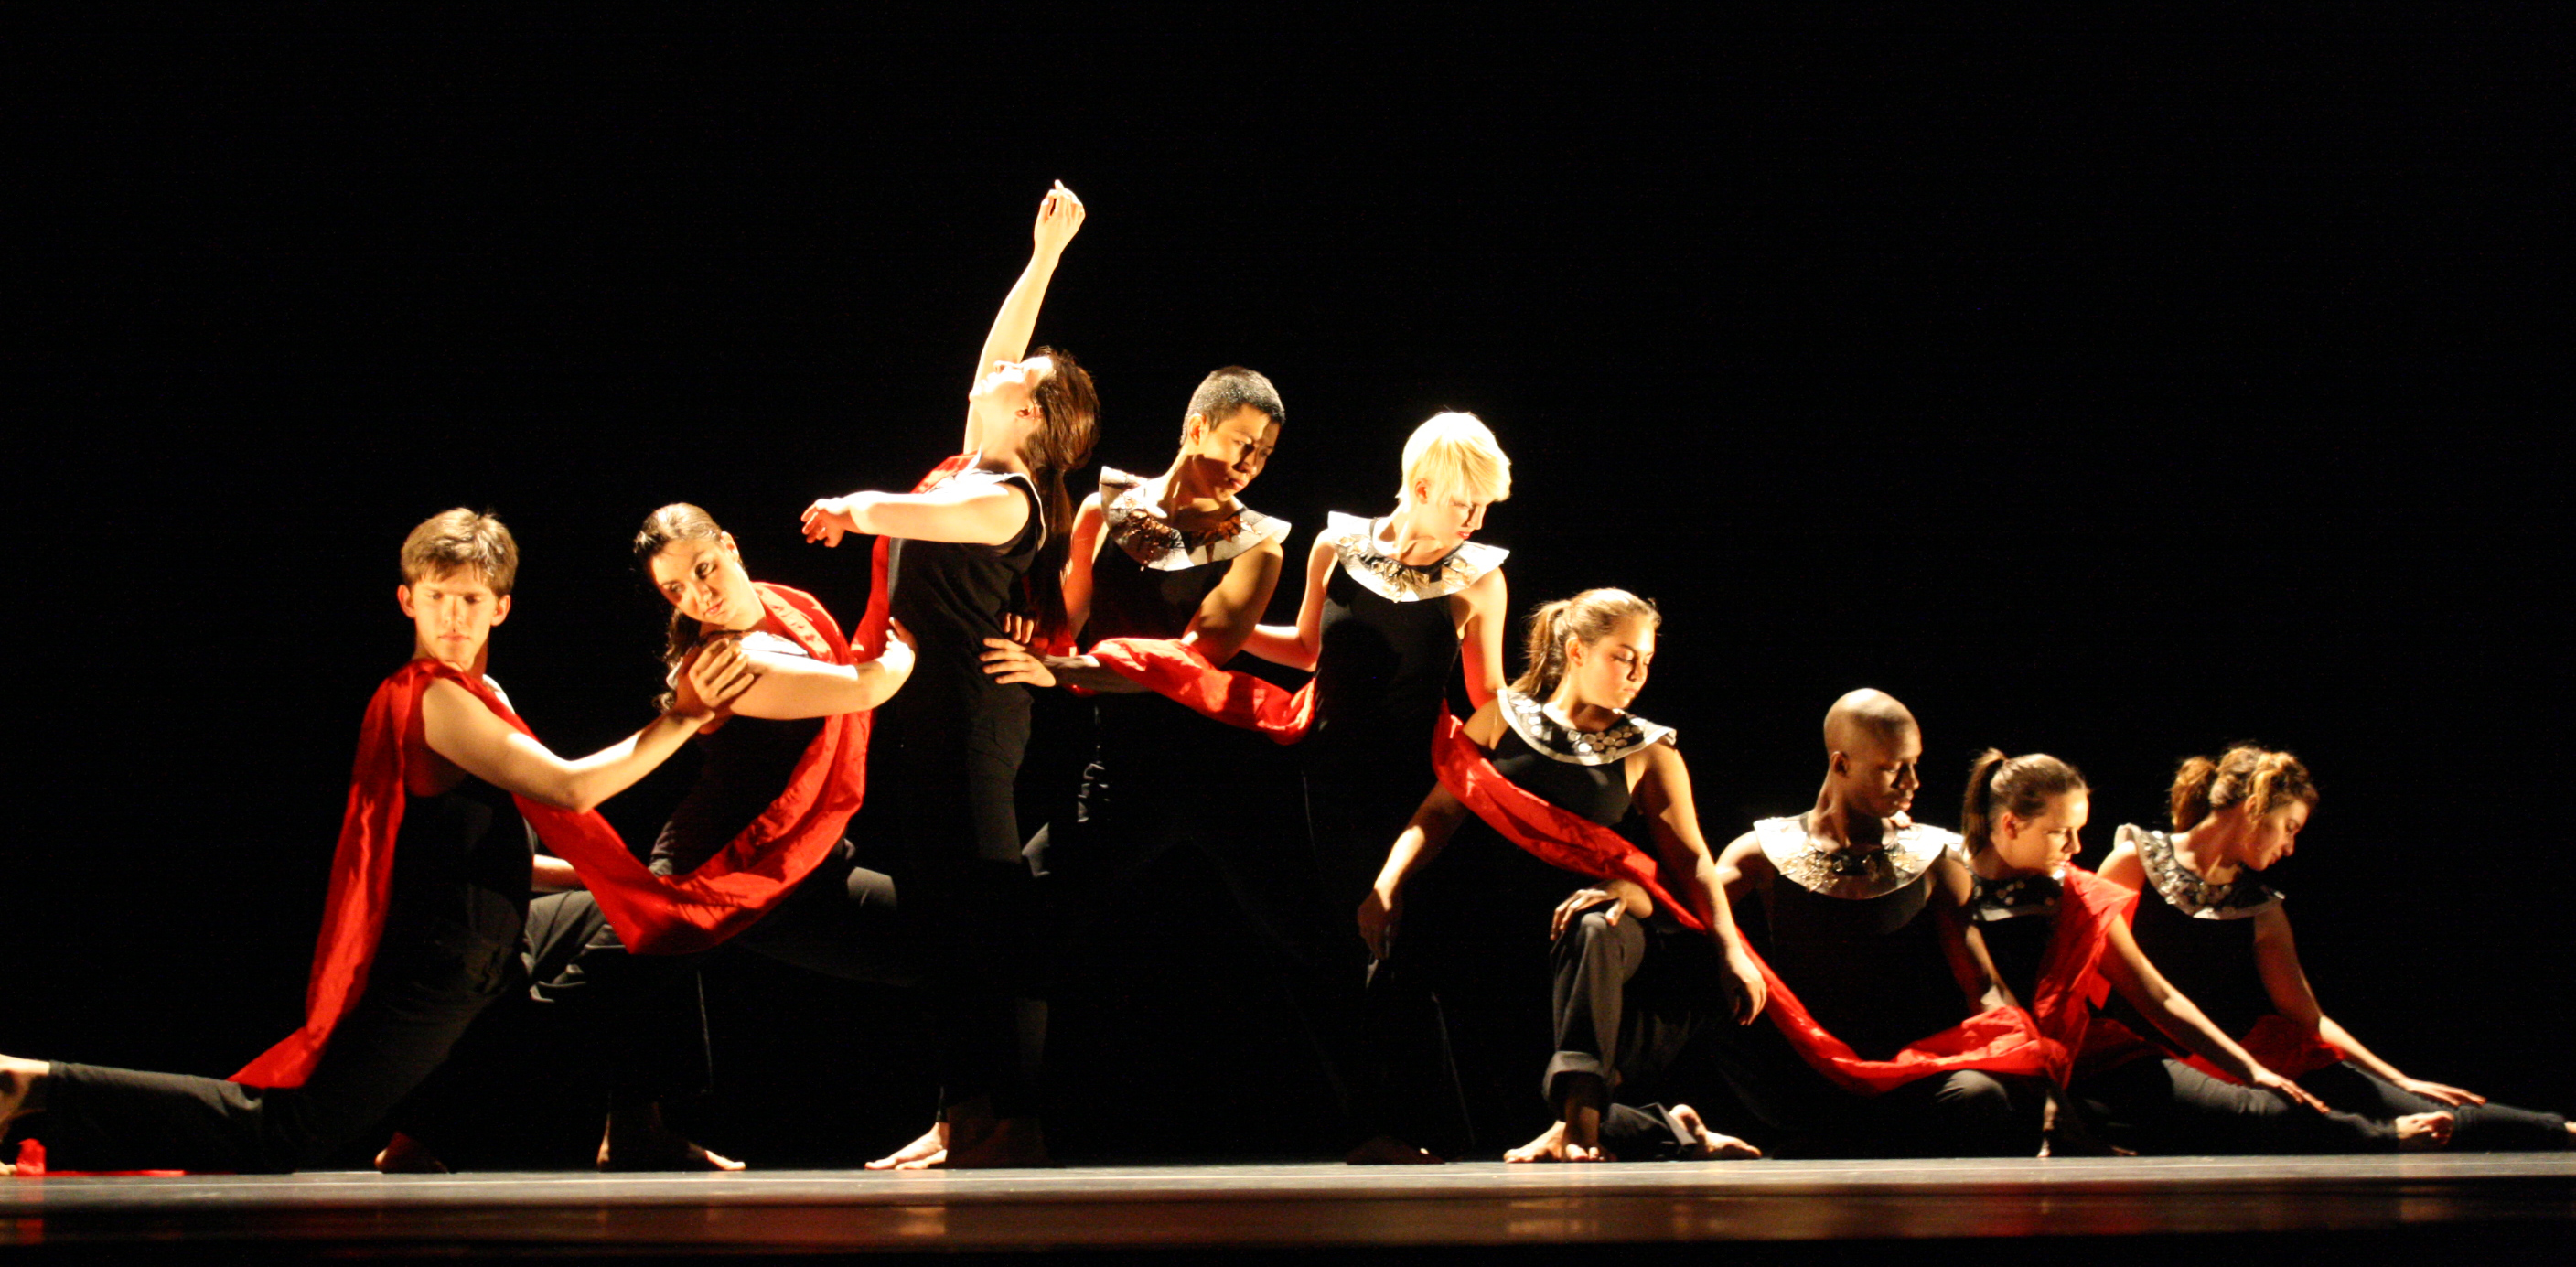 dance education essay Dance is a discipline with so much variety that it's no surprise many students find  their passion in one or more of its forms while a college education can help.